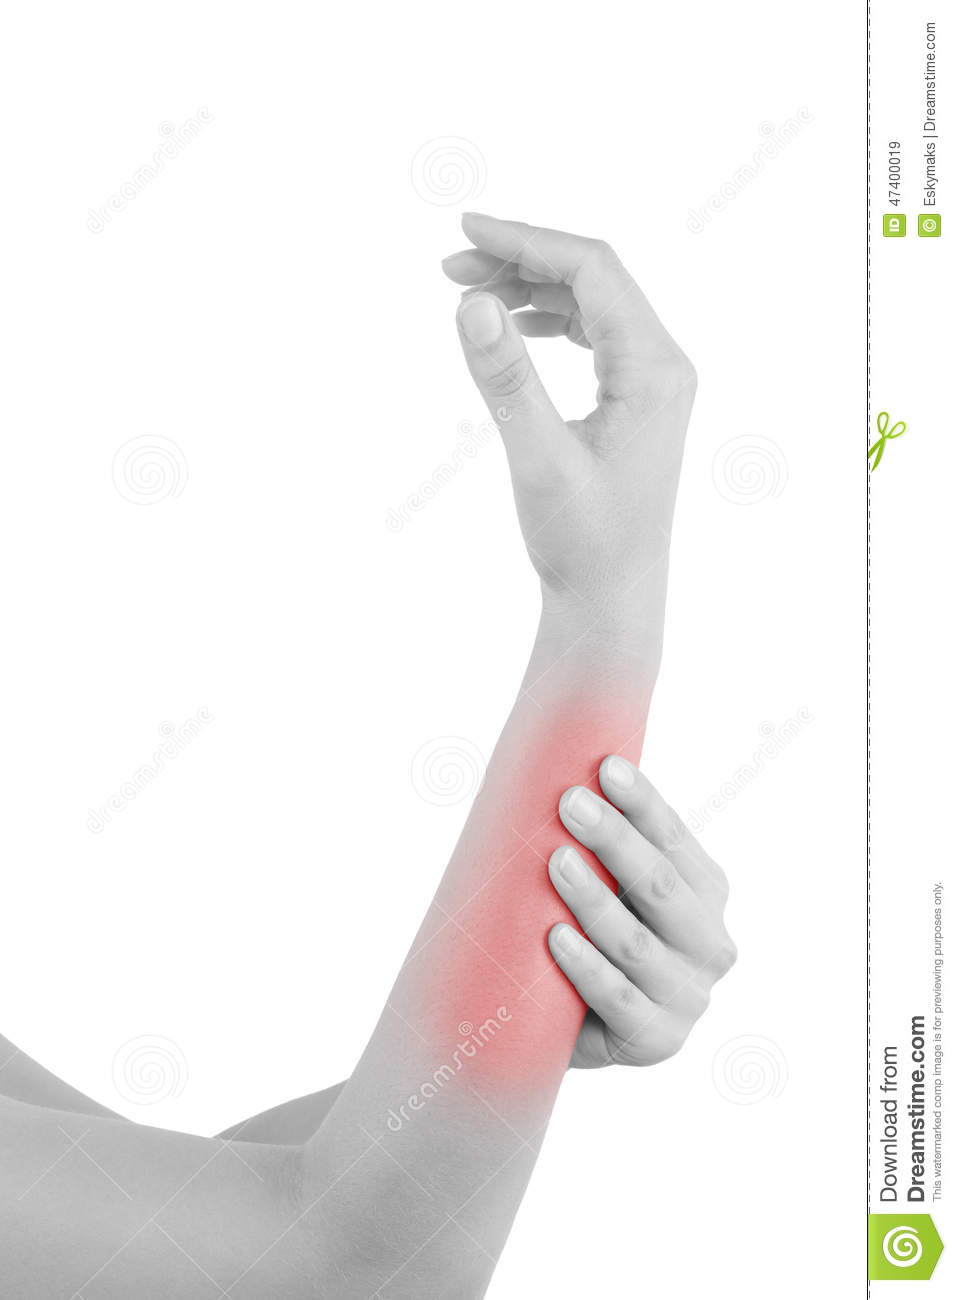 Forearm and Upper Arm Strain Injuries: Prevention